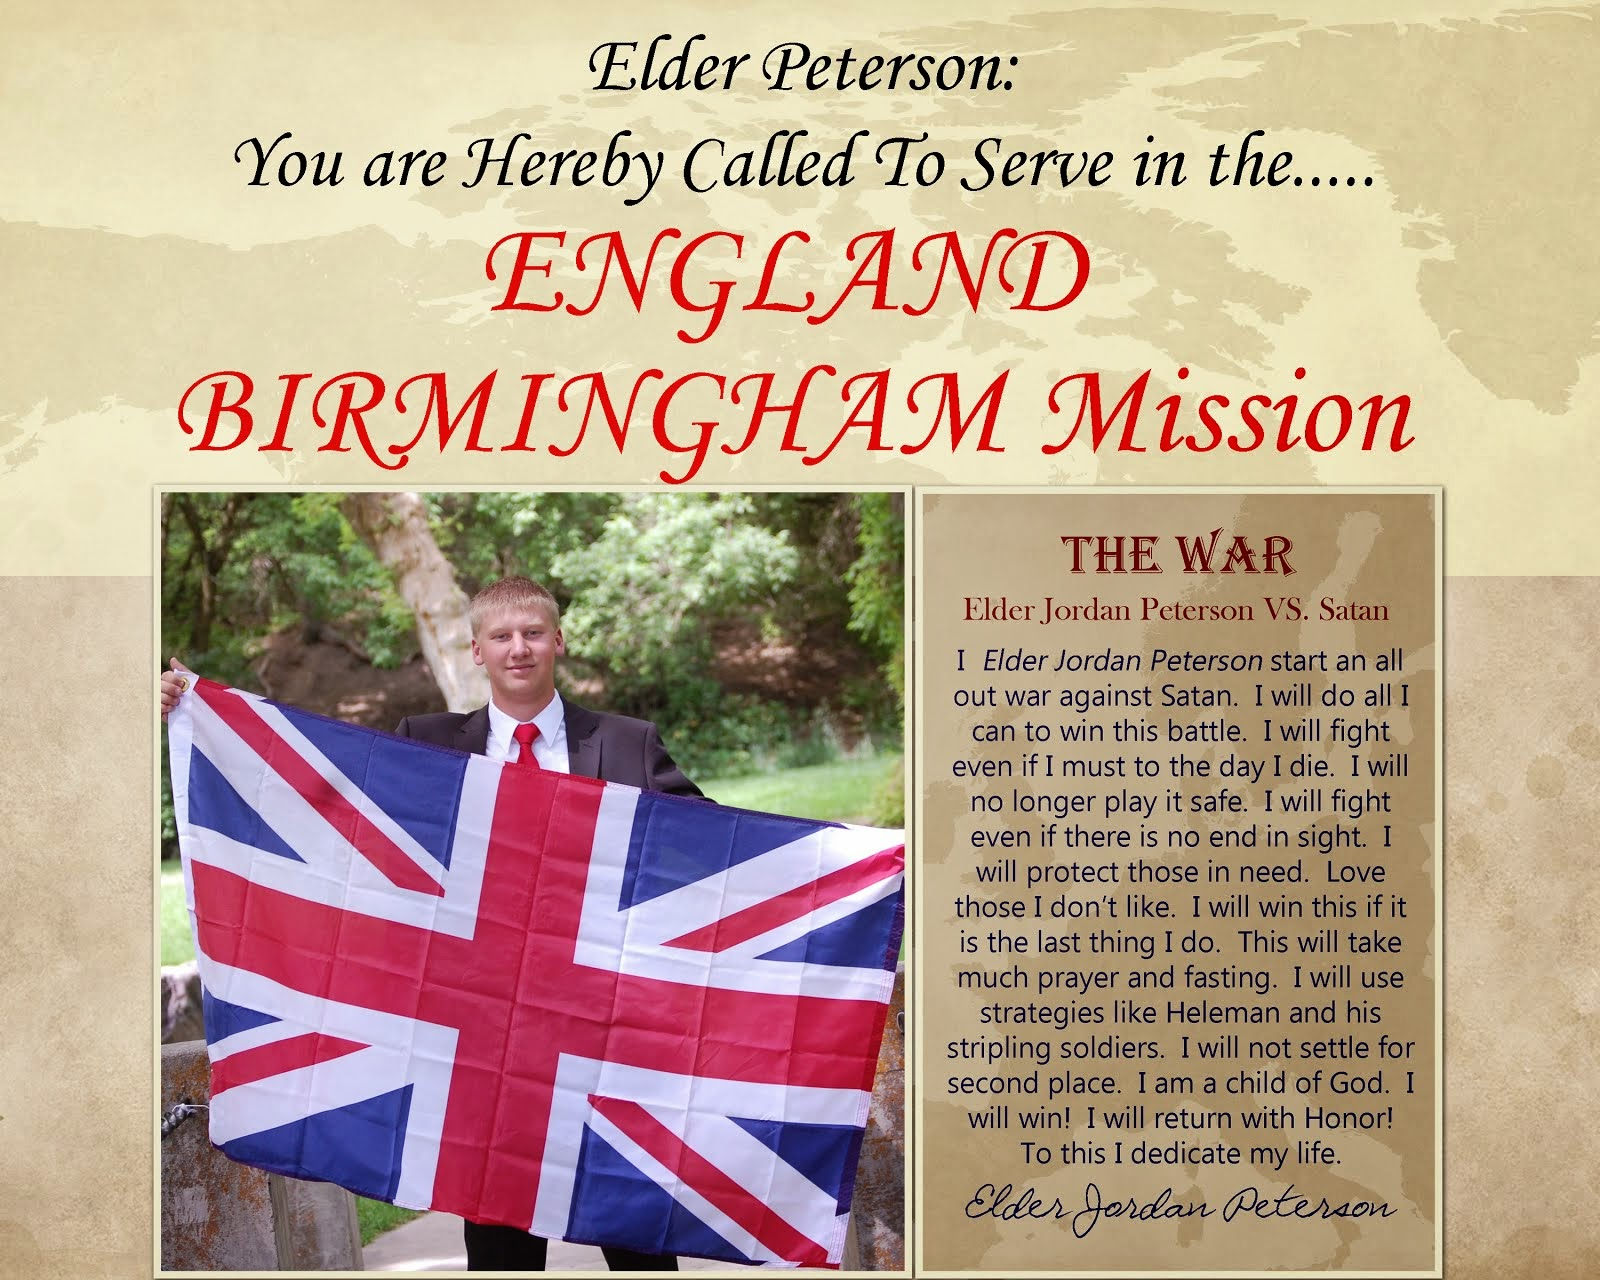 Elder Peterson: You Are Hereby Called To Serve in the....ENGLAND BIRMINGHAM MISSION